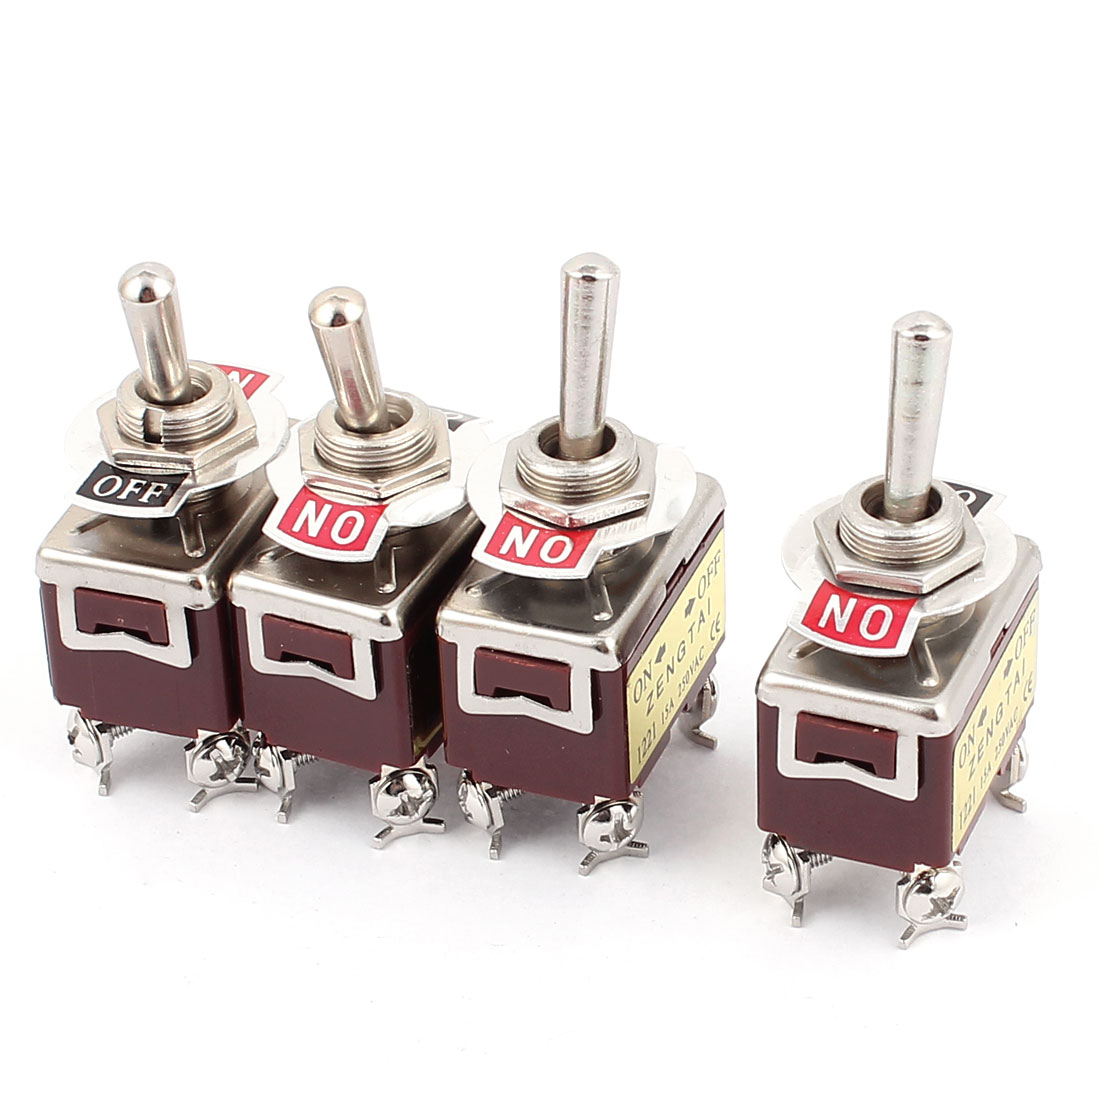 4Pcs AC250V 15A On/Off DPST 4 Screw Terminals Toggle Switch